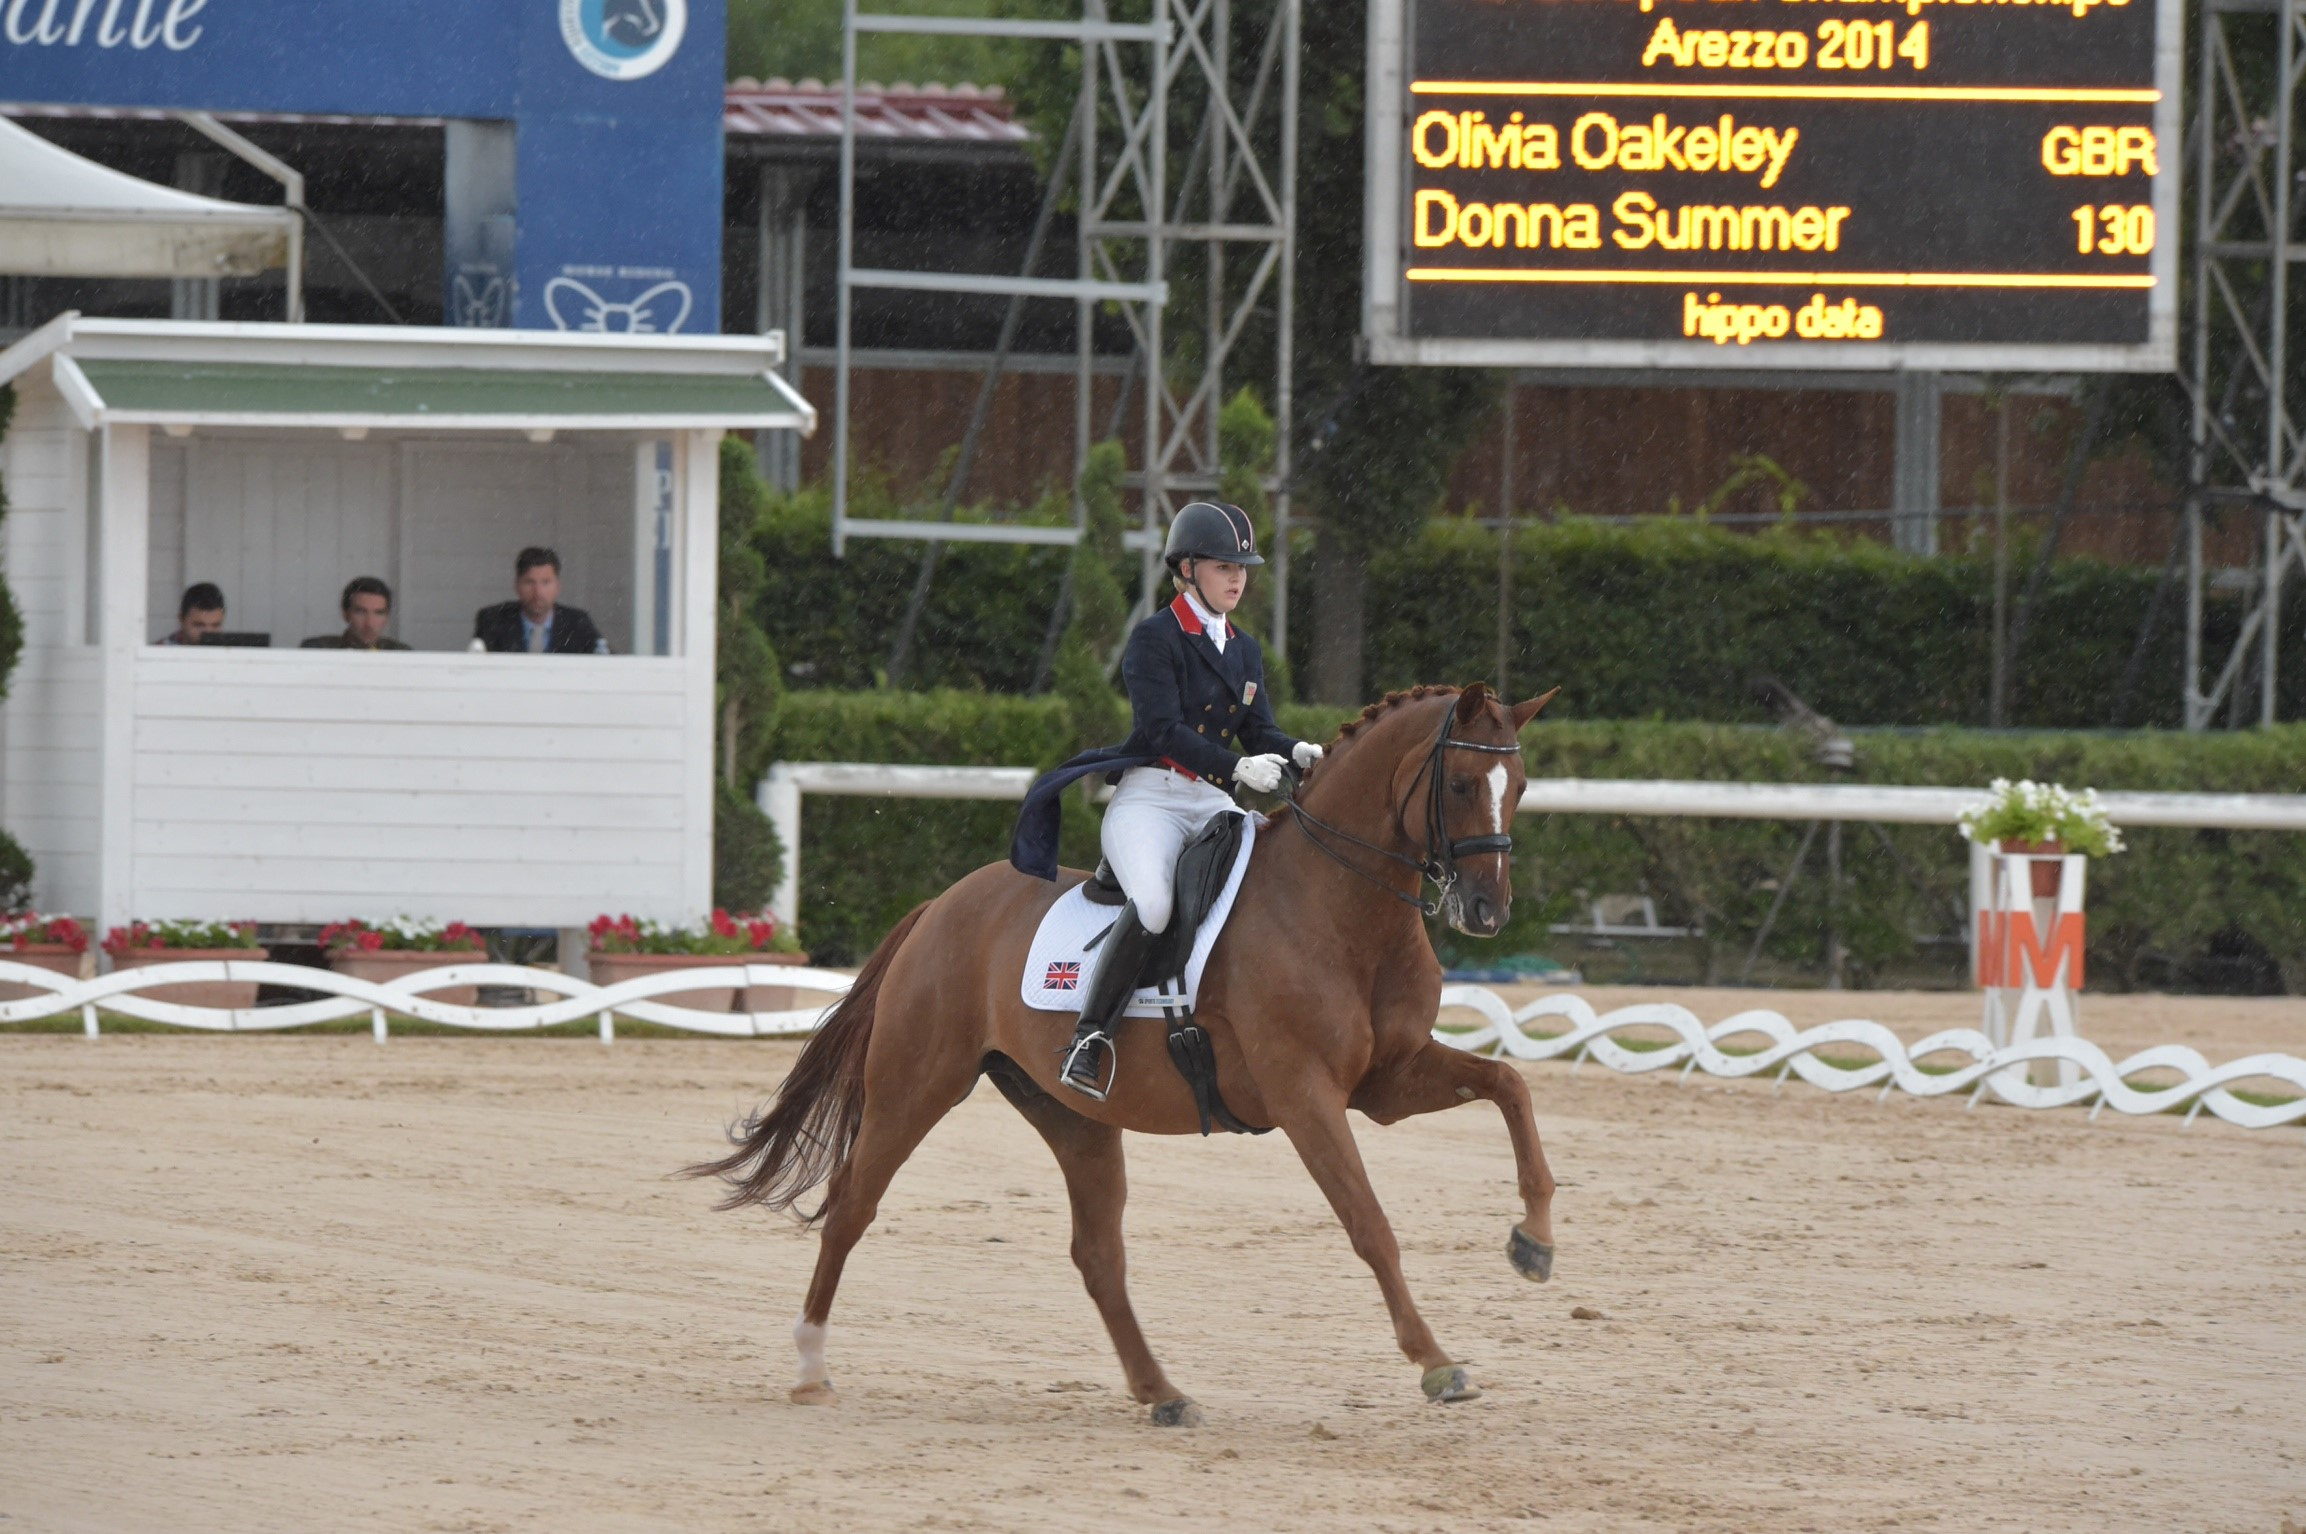 Olivia Oakeley Eur Champs riding Donna Summer Rio 3 - Outstanding Olivia one of Europe 's best